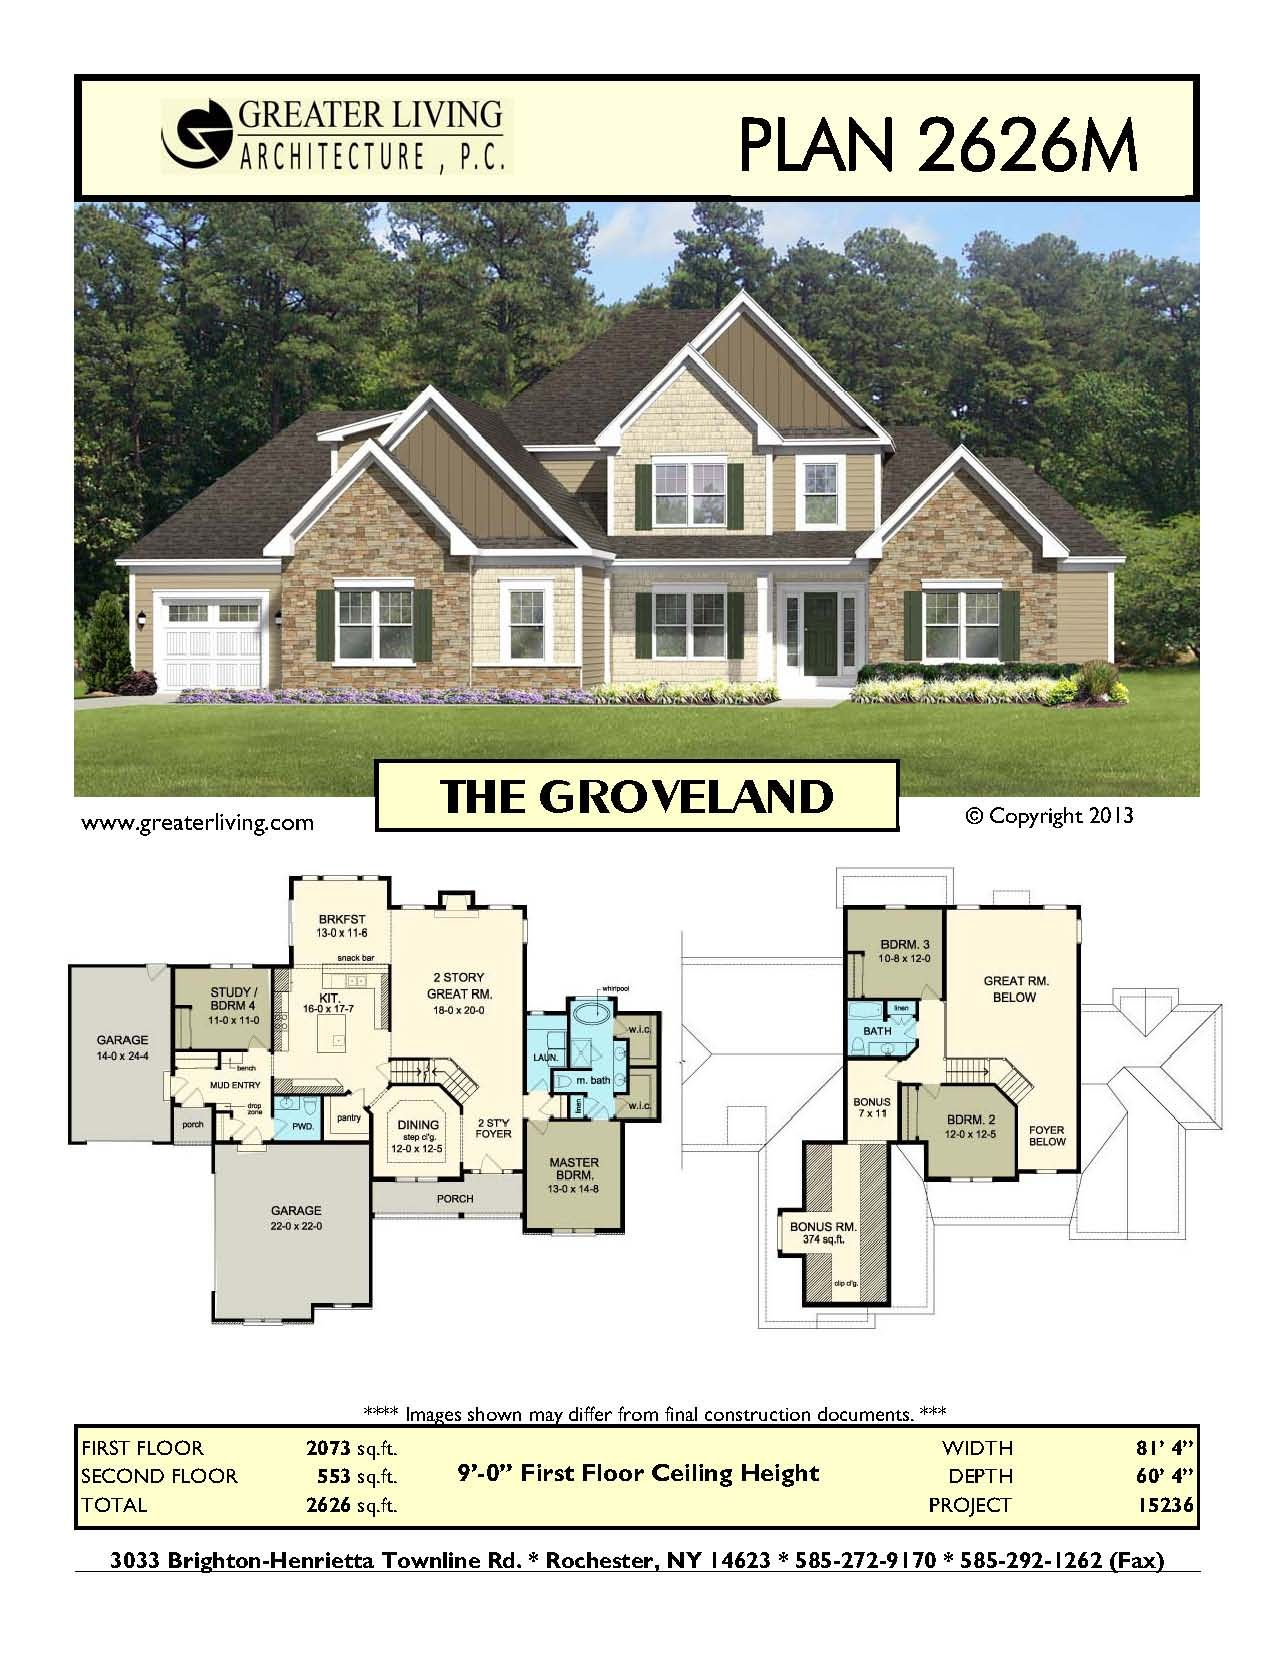 Plan 2626m The Groveland House Plans Two Story House Plans 1st Floor Master Greater Craftsman Bungalow House Plans New House Plans Vintage House Plans